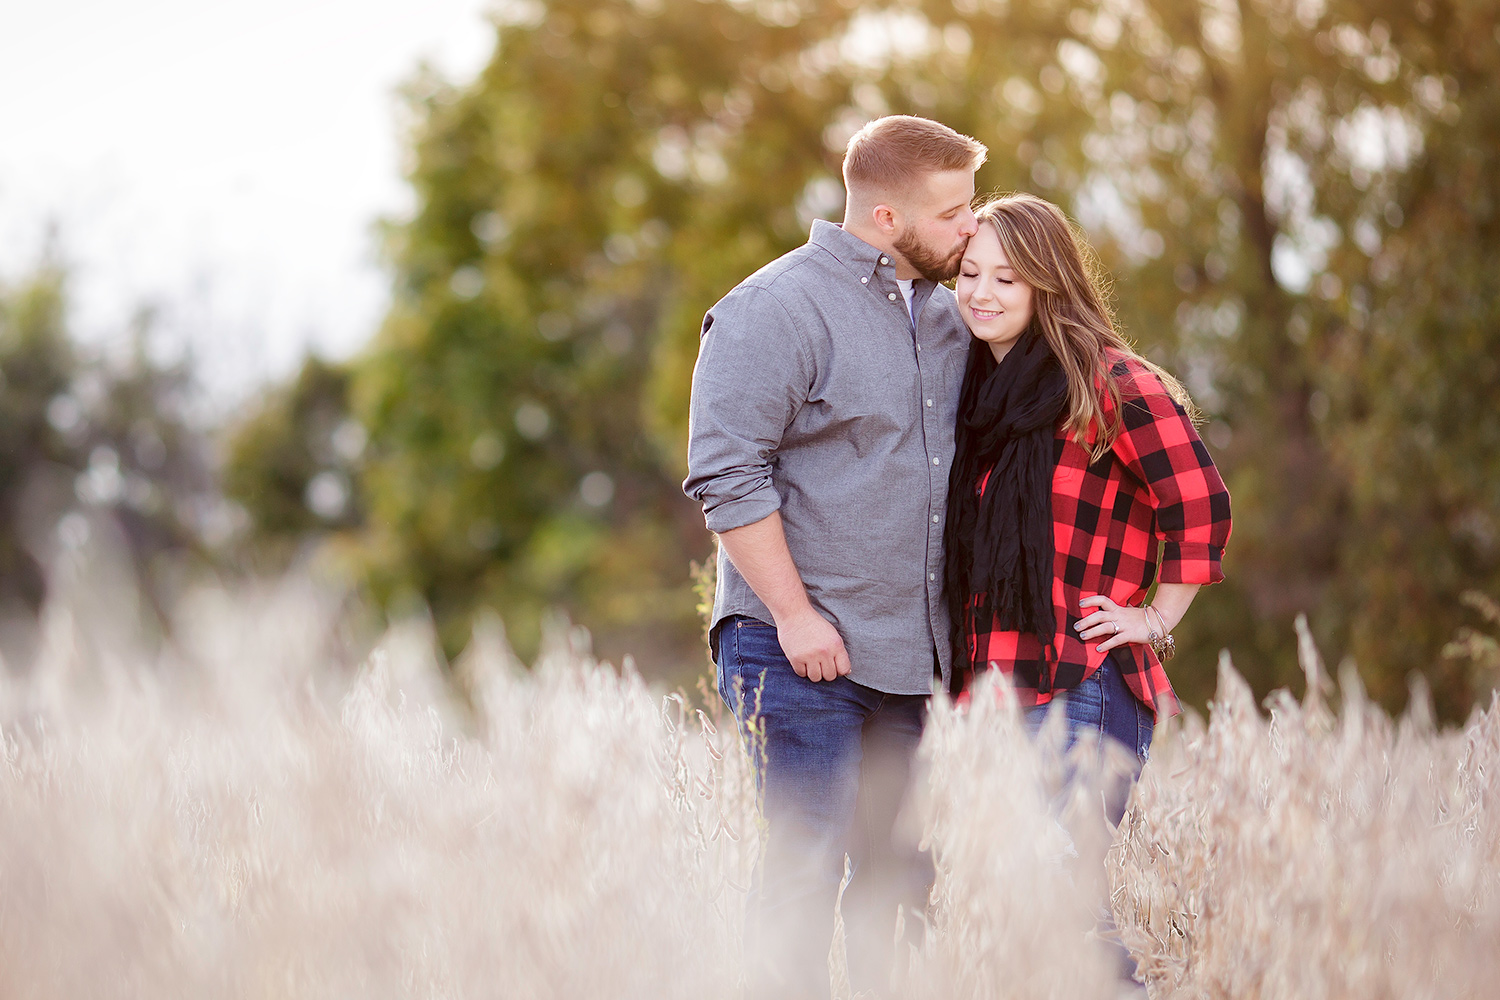 Engagement-session-photographers-berks-county-pa_019